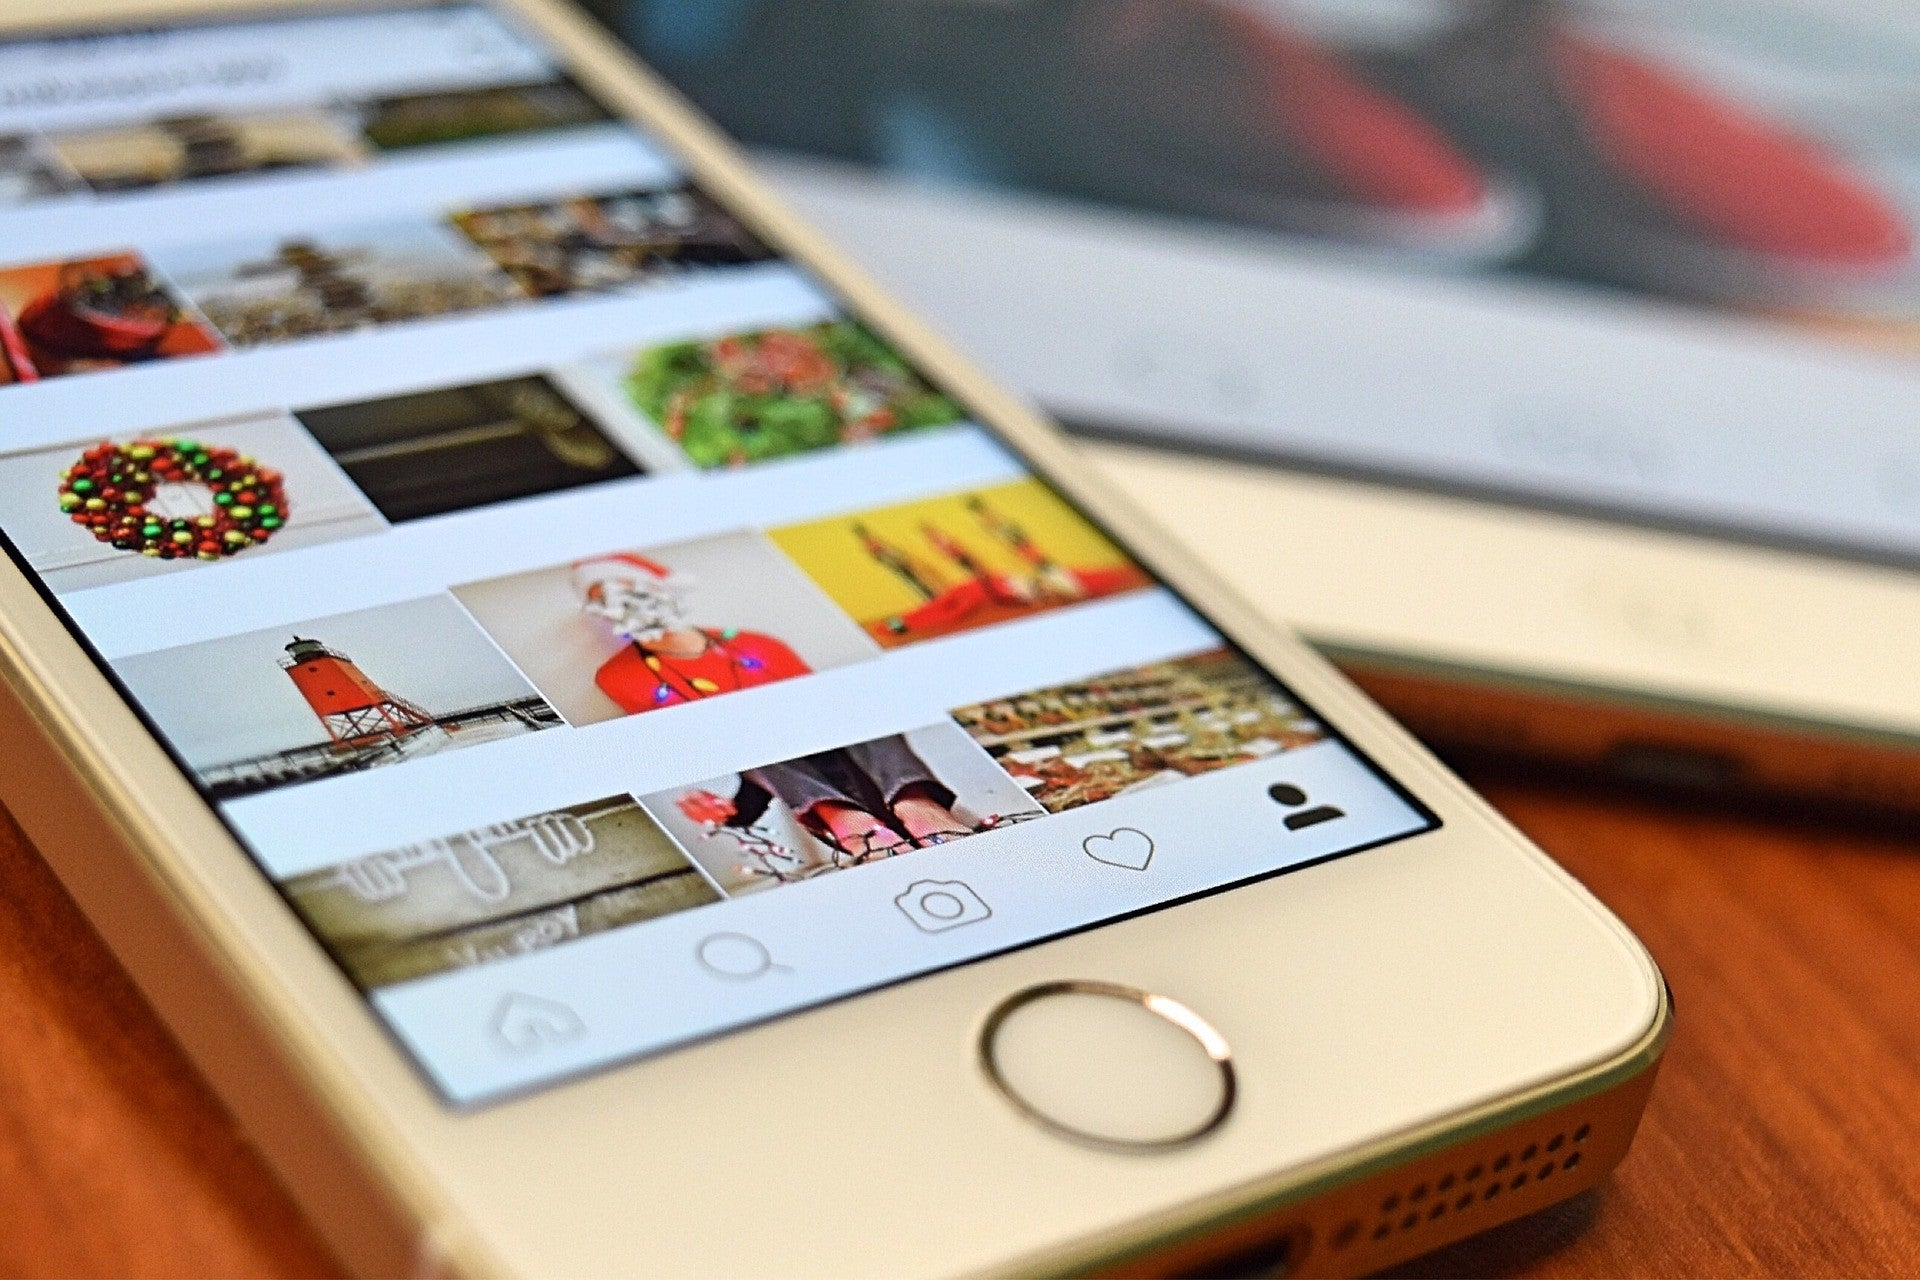 The top Instagram tricks and tips